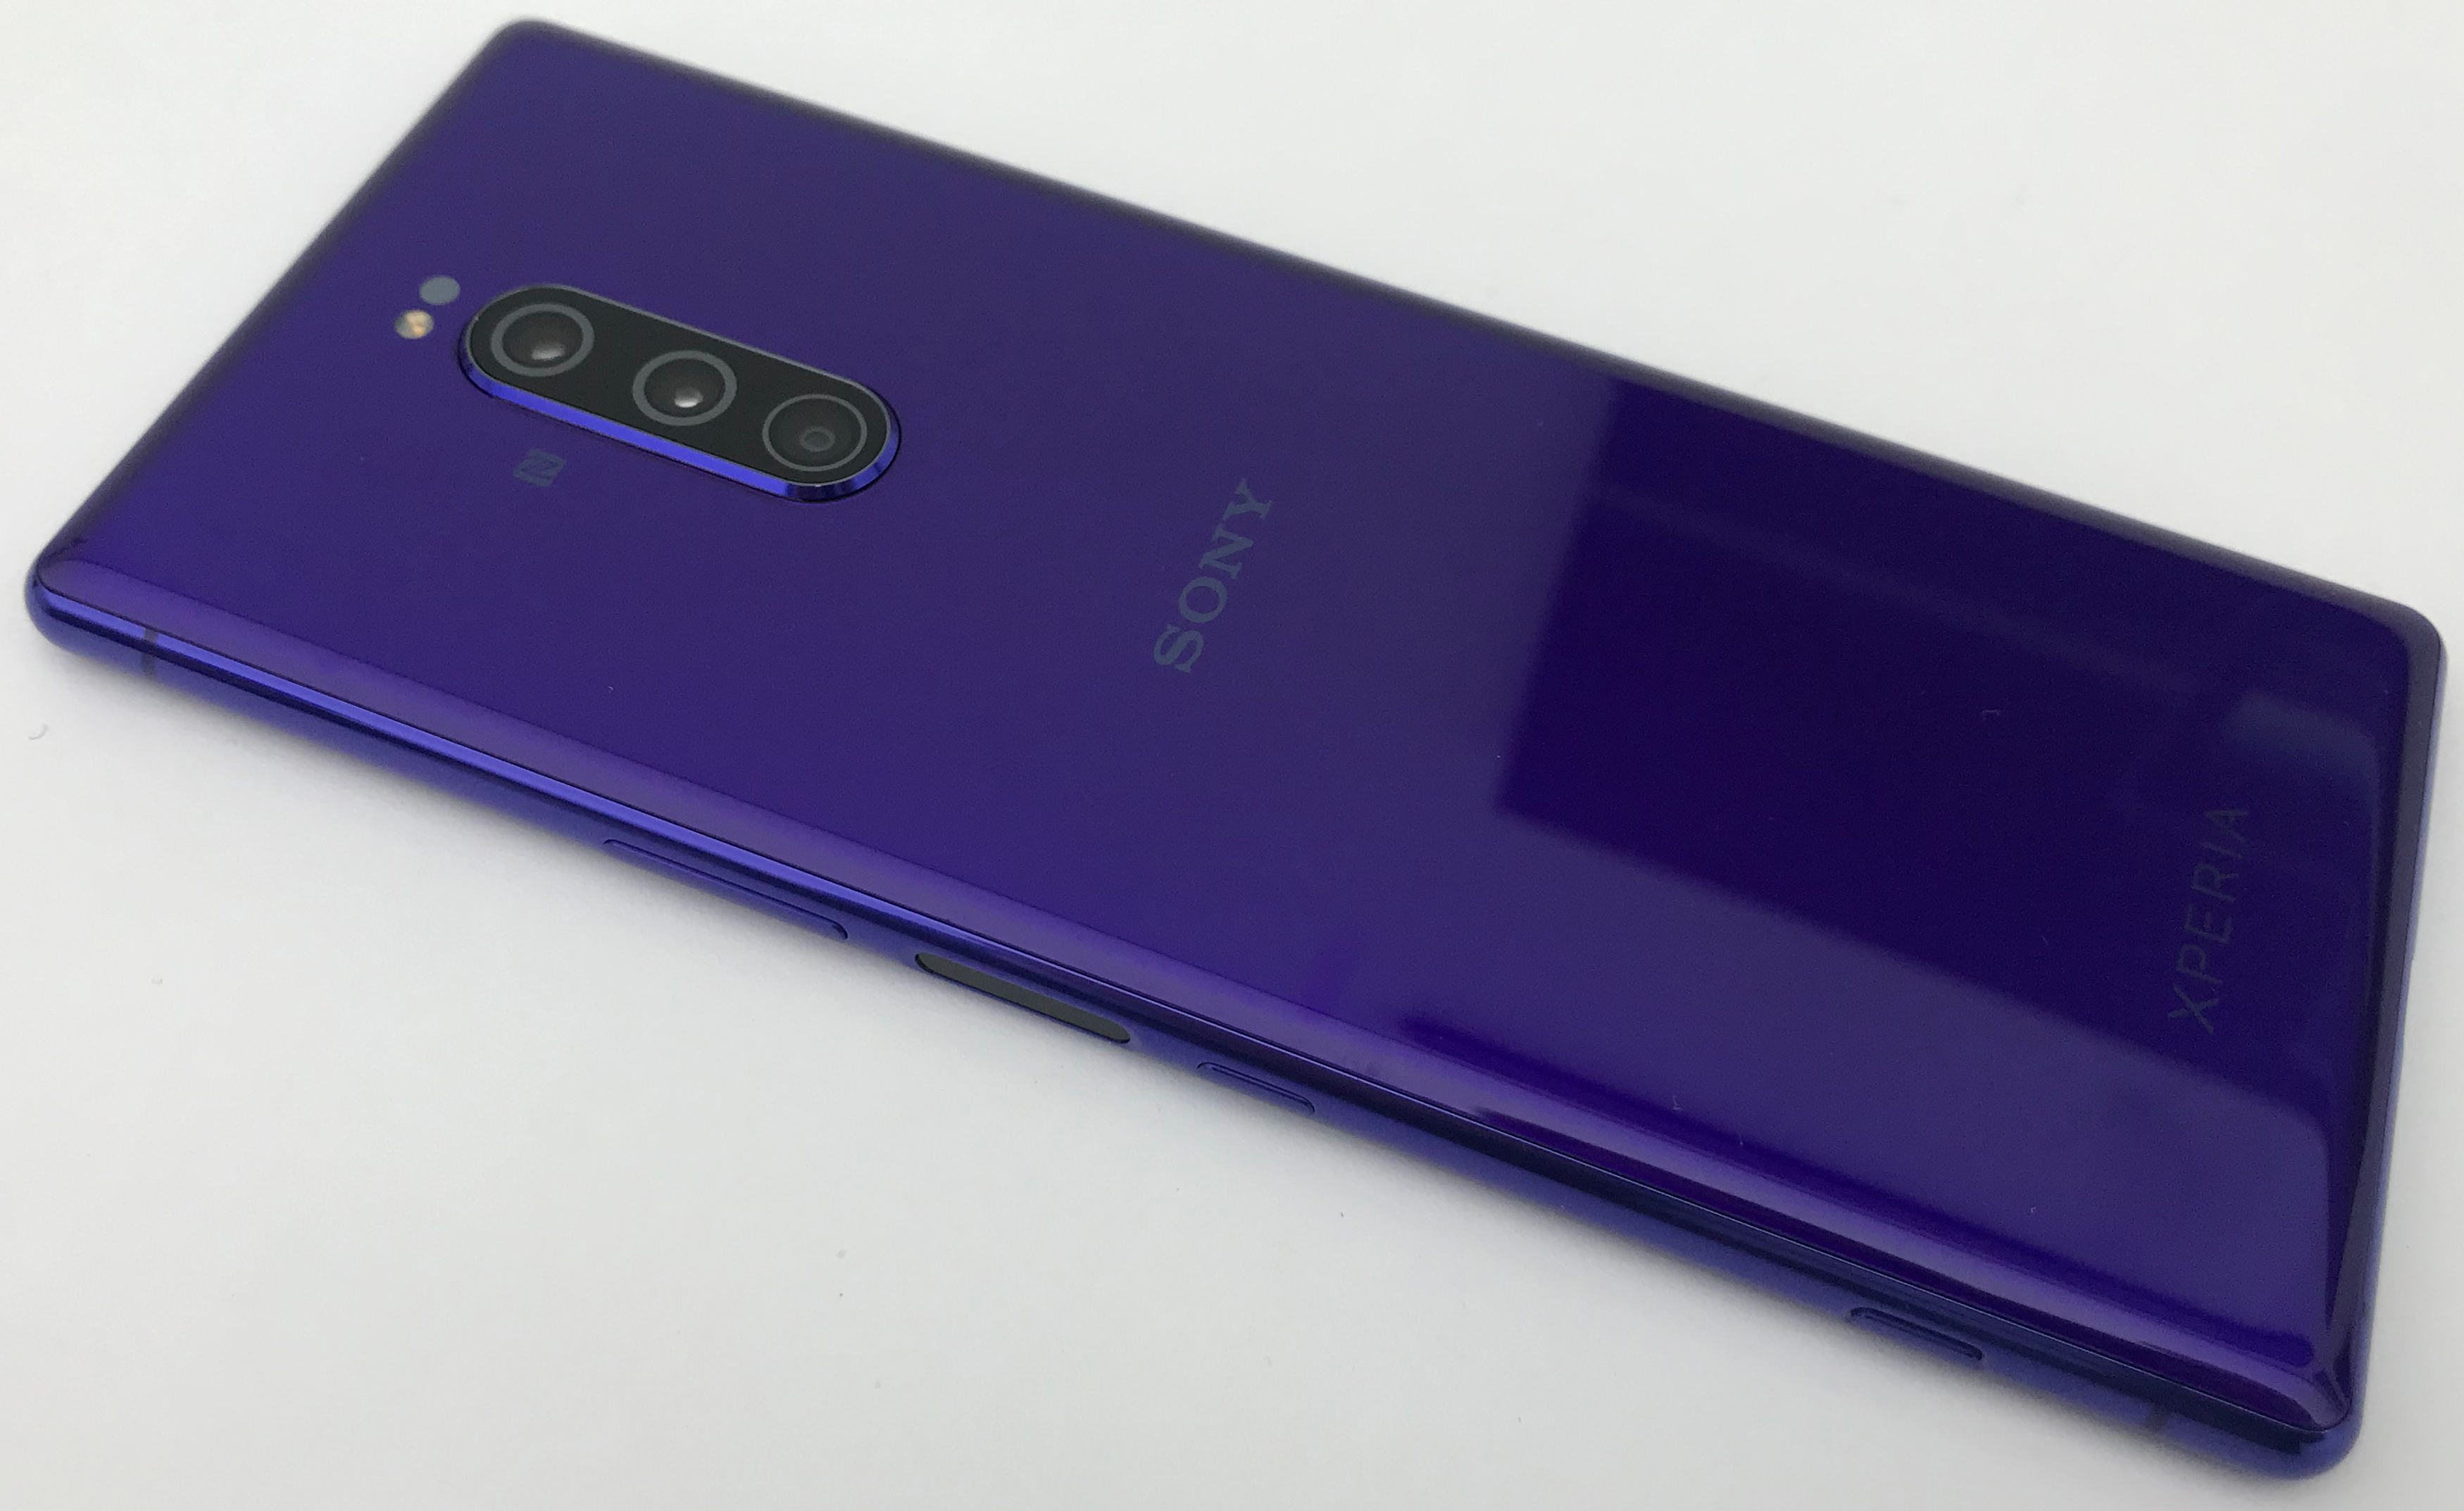 Sony's Flagship Xperia 1 21:9 Smartphone Gets a Launch Date: July